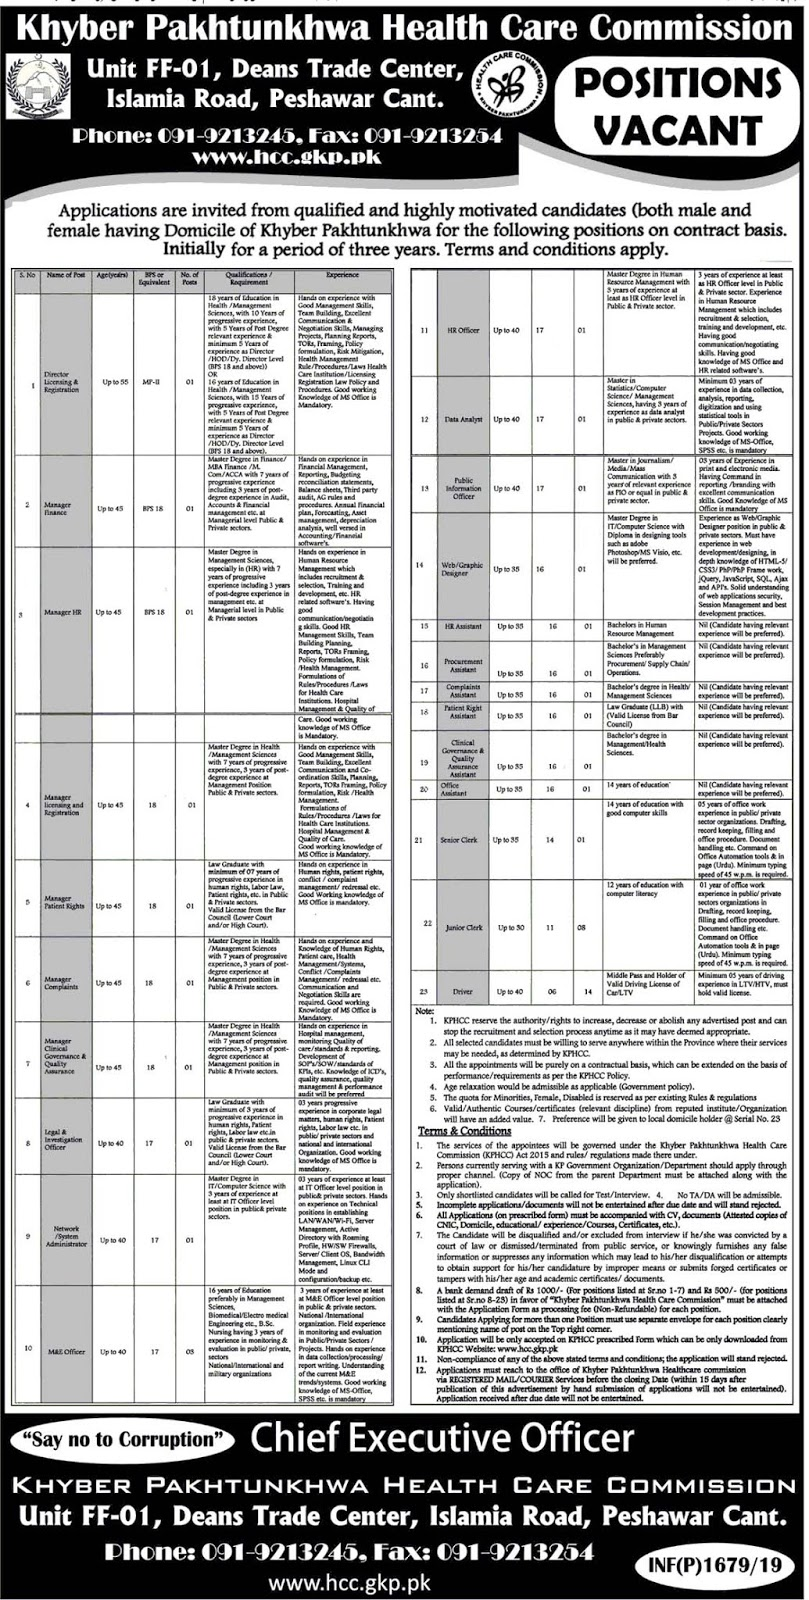 Khyber Pakhtunkhwa Health Care Commission KPHCC Jobs 2019